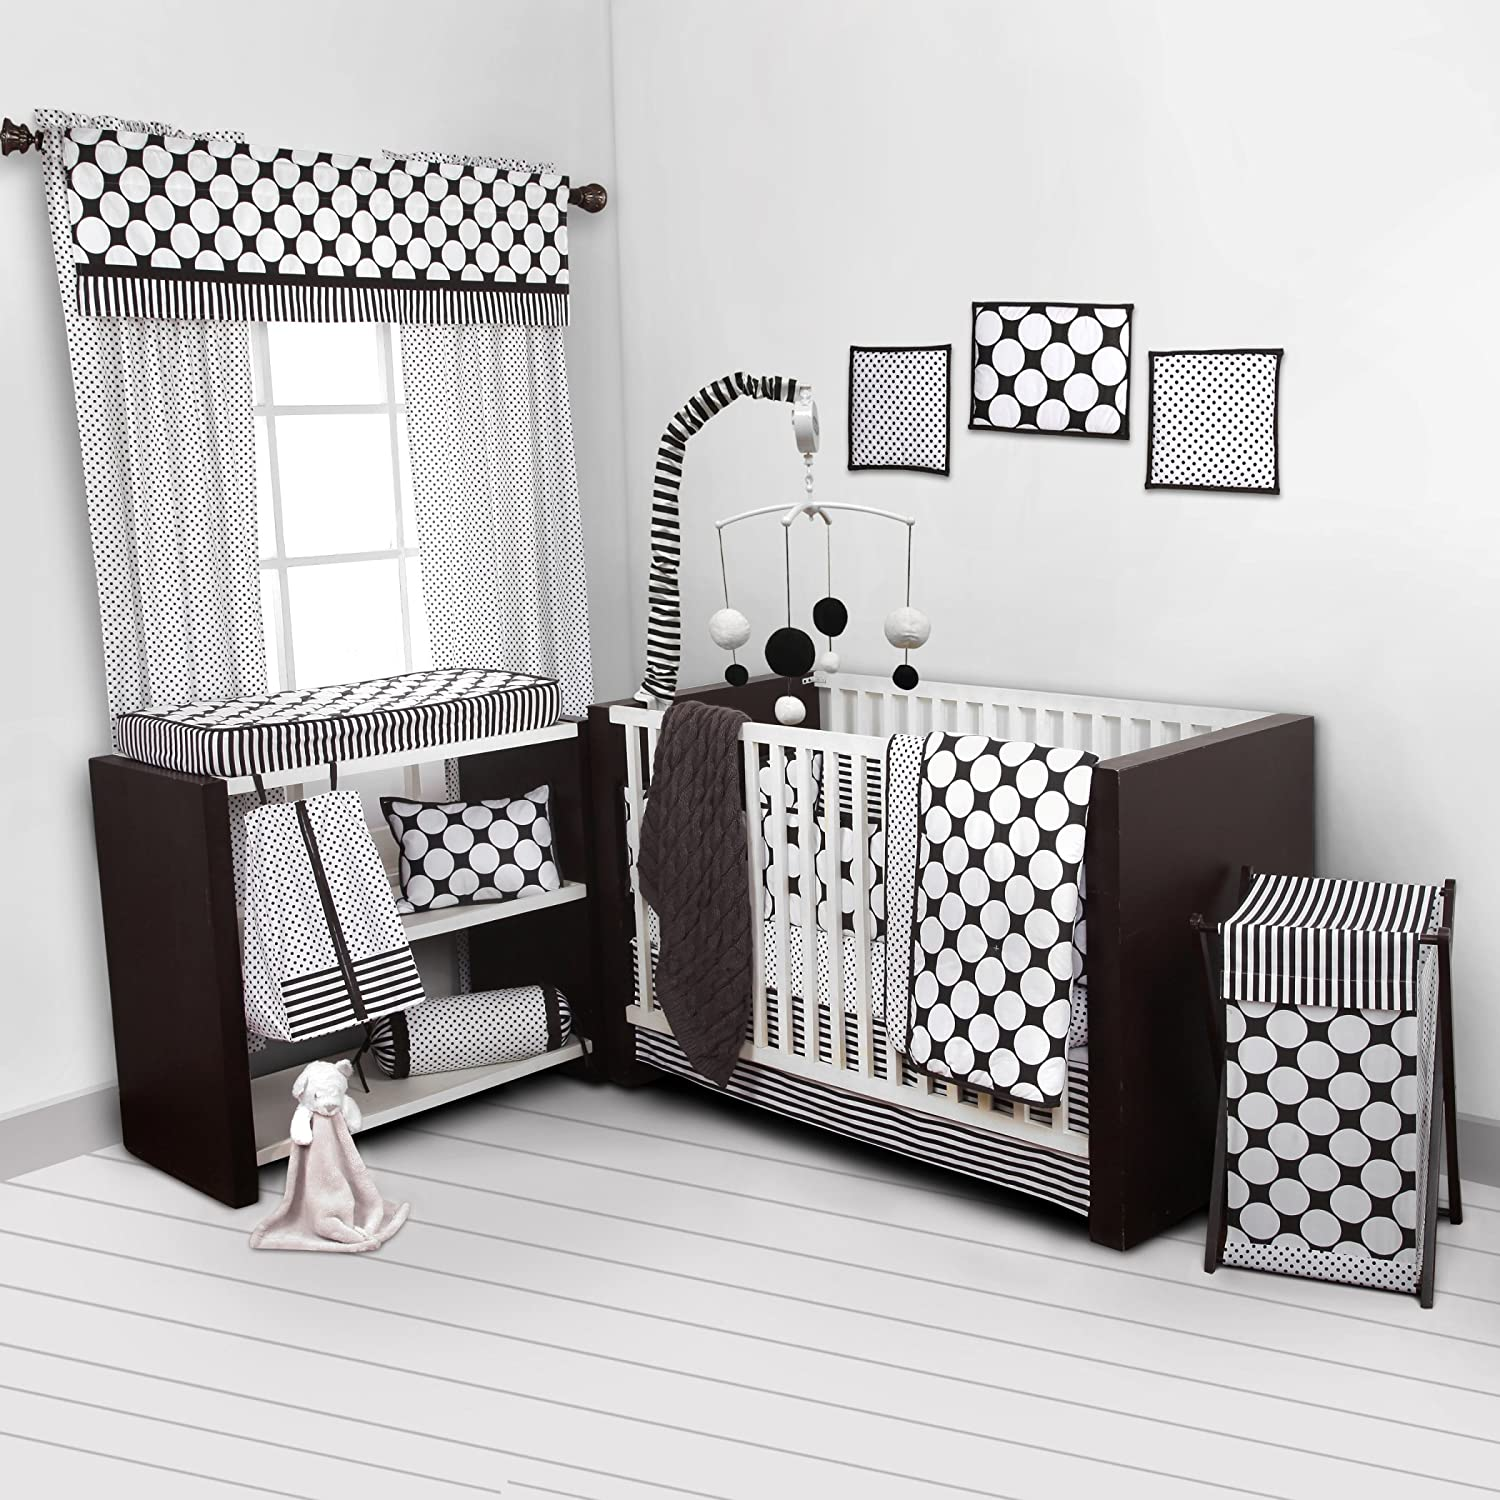 Bacati - Dots/pin Stripes Black/White 10 Pc Crib Set Including Bumper Pad 100 Percent Cotton